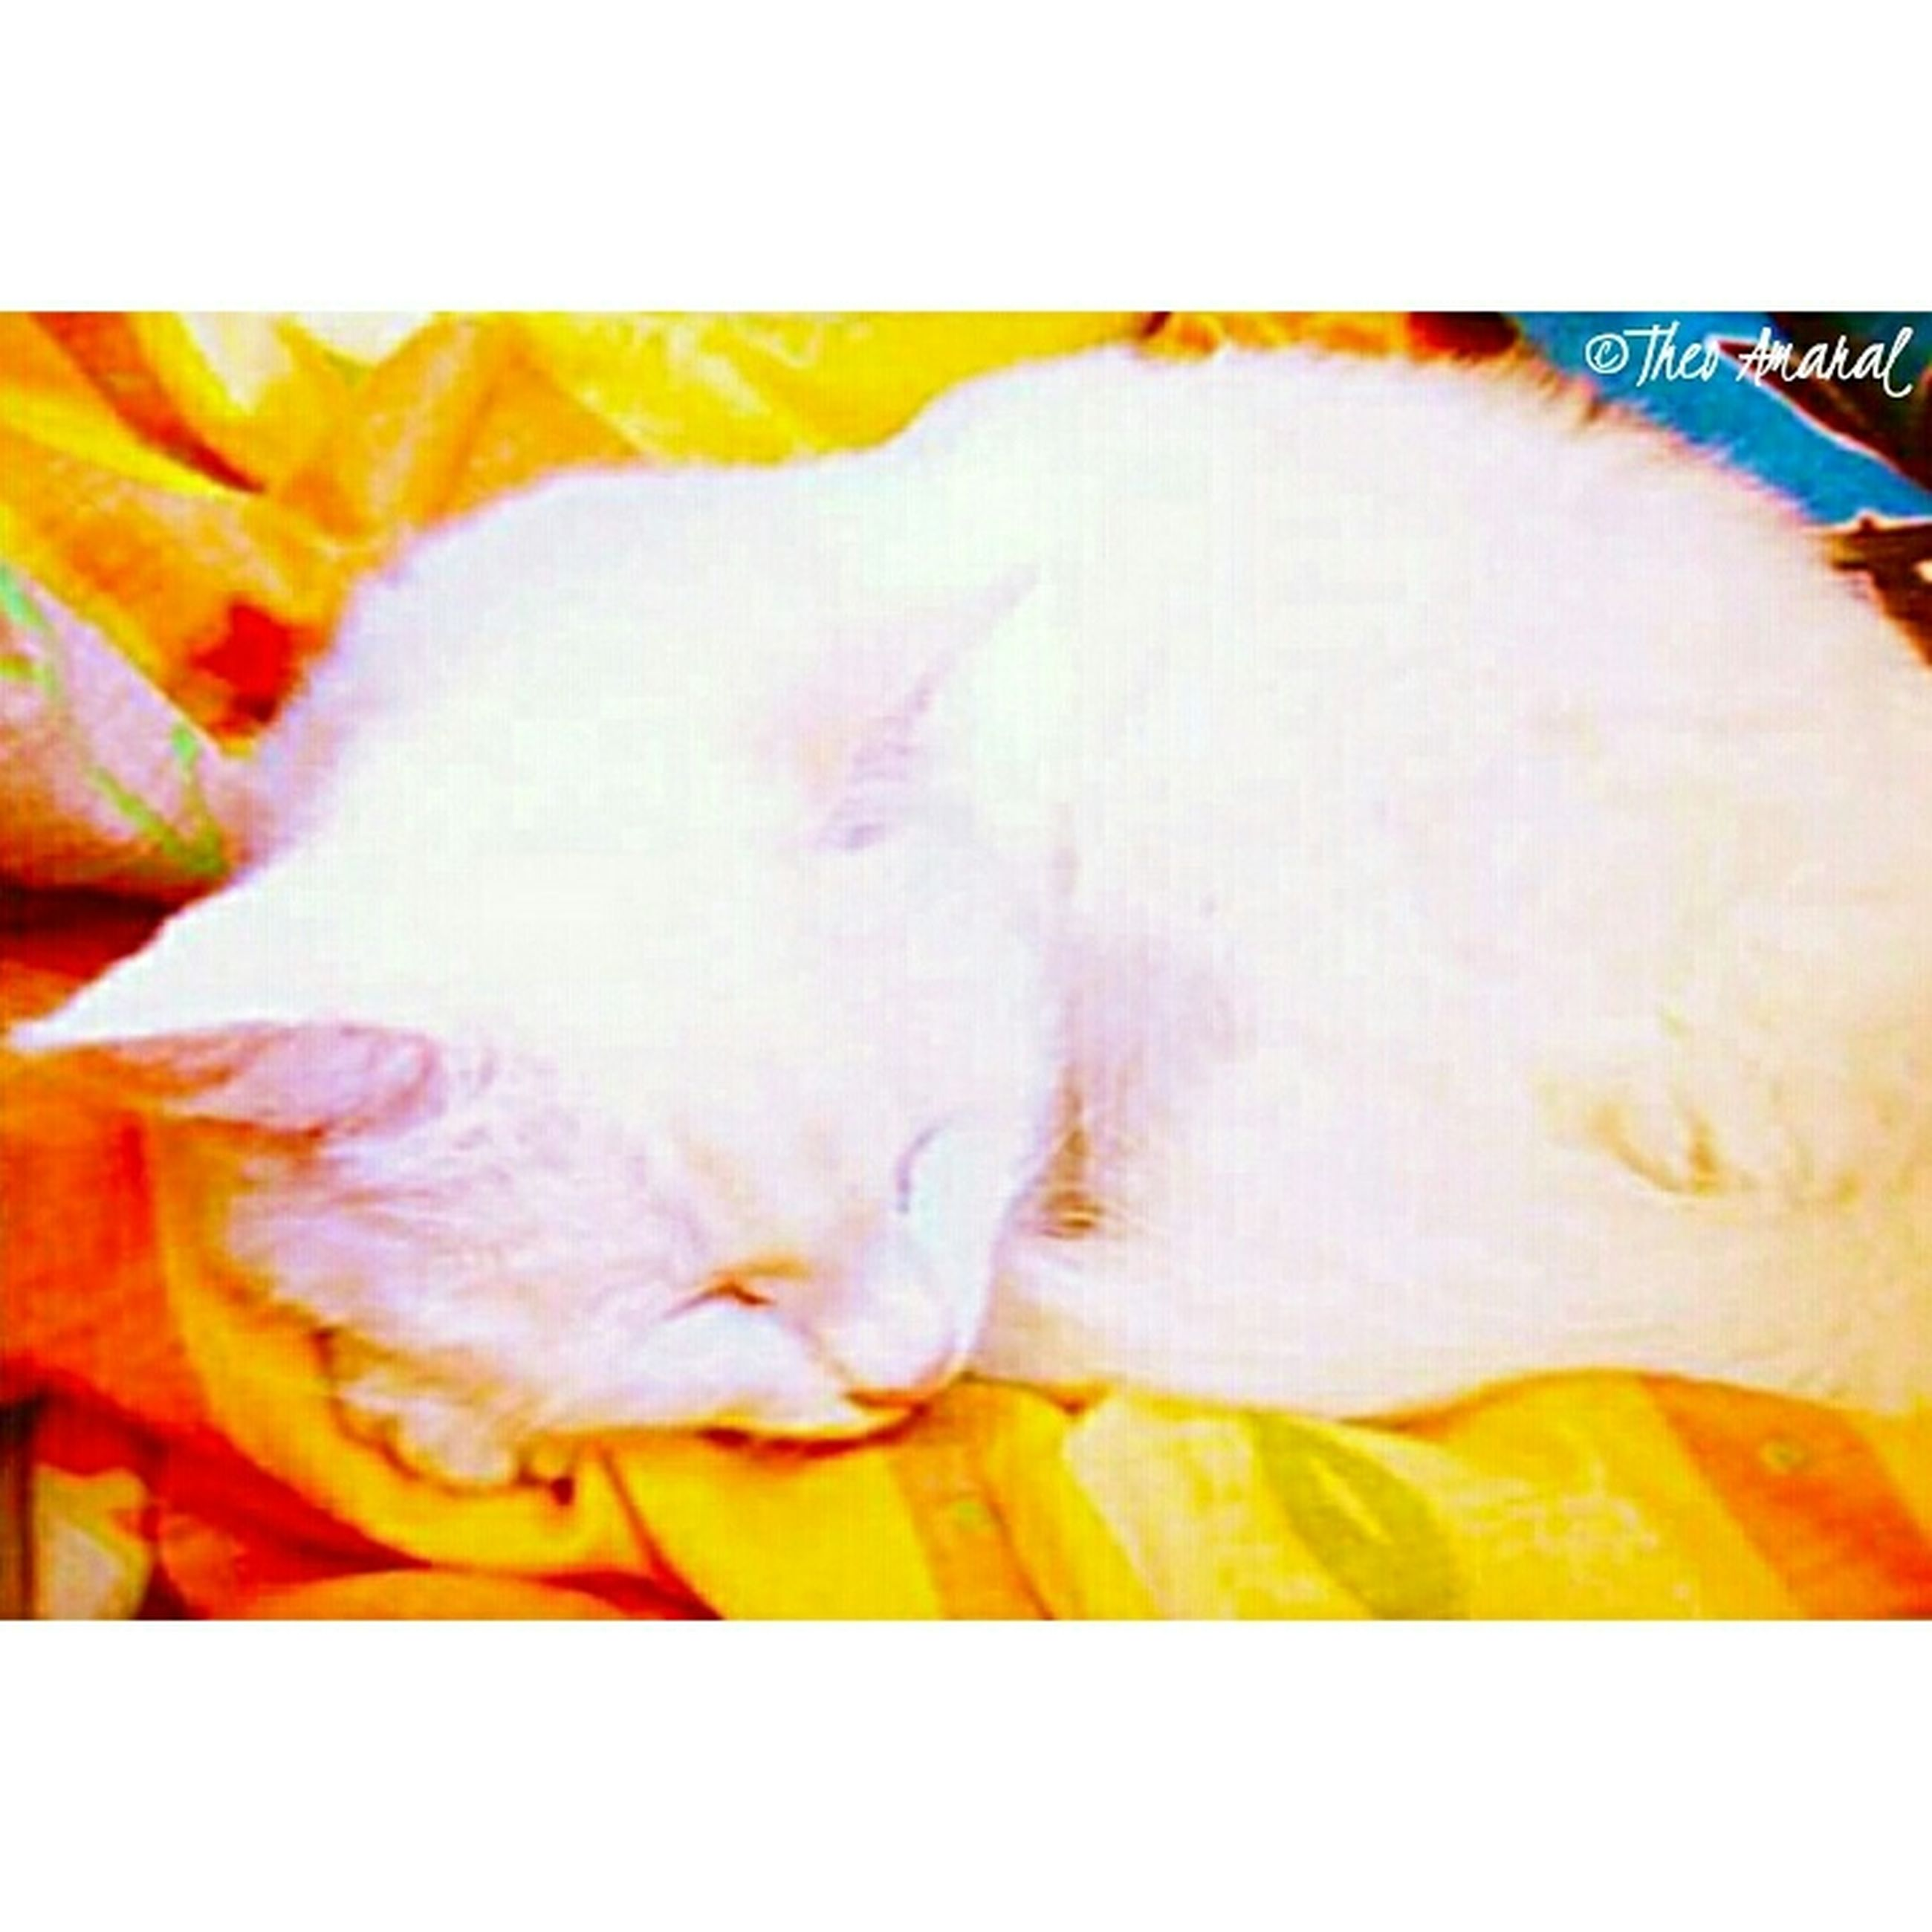 transfer print, auto post production filter, indoors, yellow, pets, domestic animals, sleeping, close-up, relaxation, domestic cat, no people, animal themes, bed, high angle view, one animal, cat, mammal, sheet, resting, selective focus